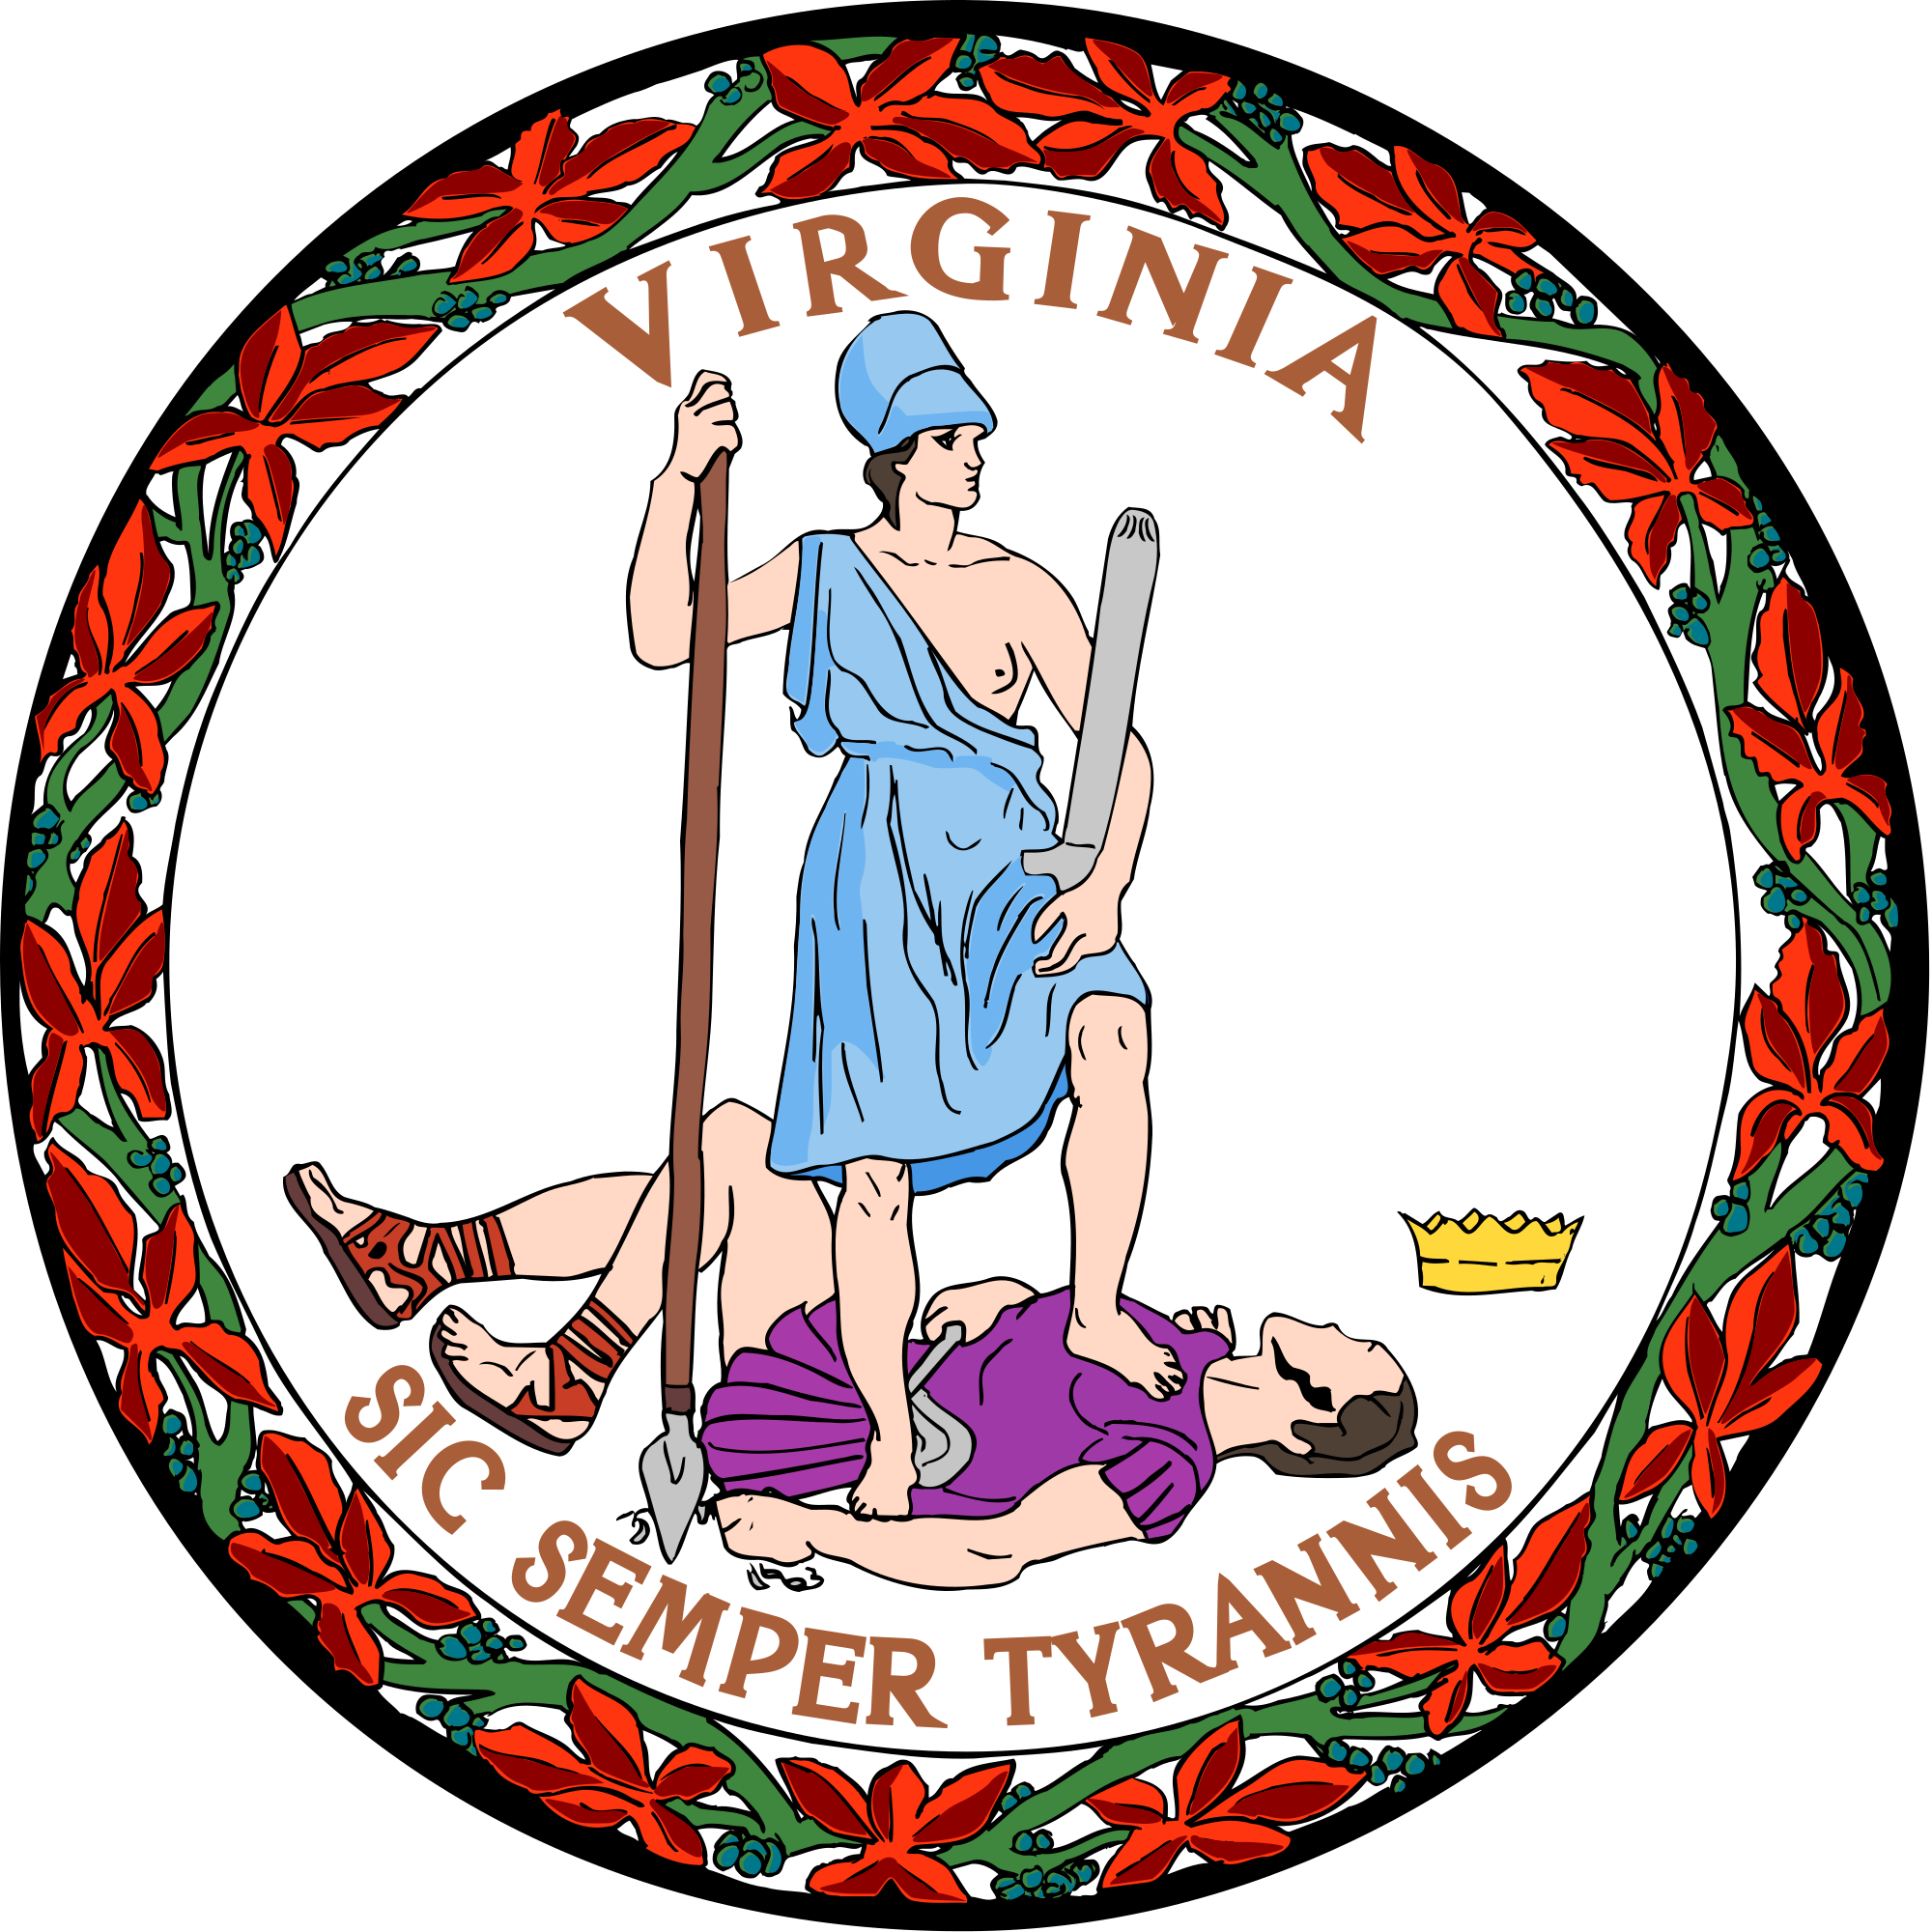 Thumbnail photo of State of Virginia project